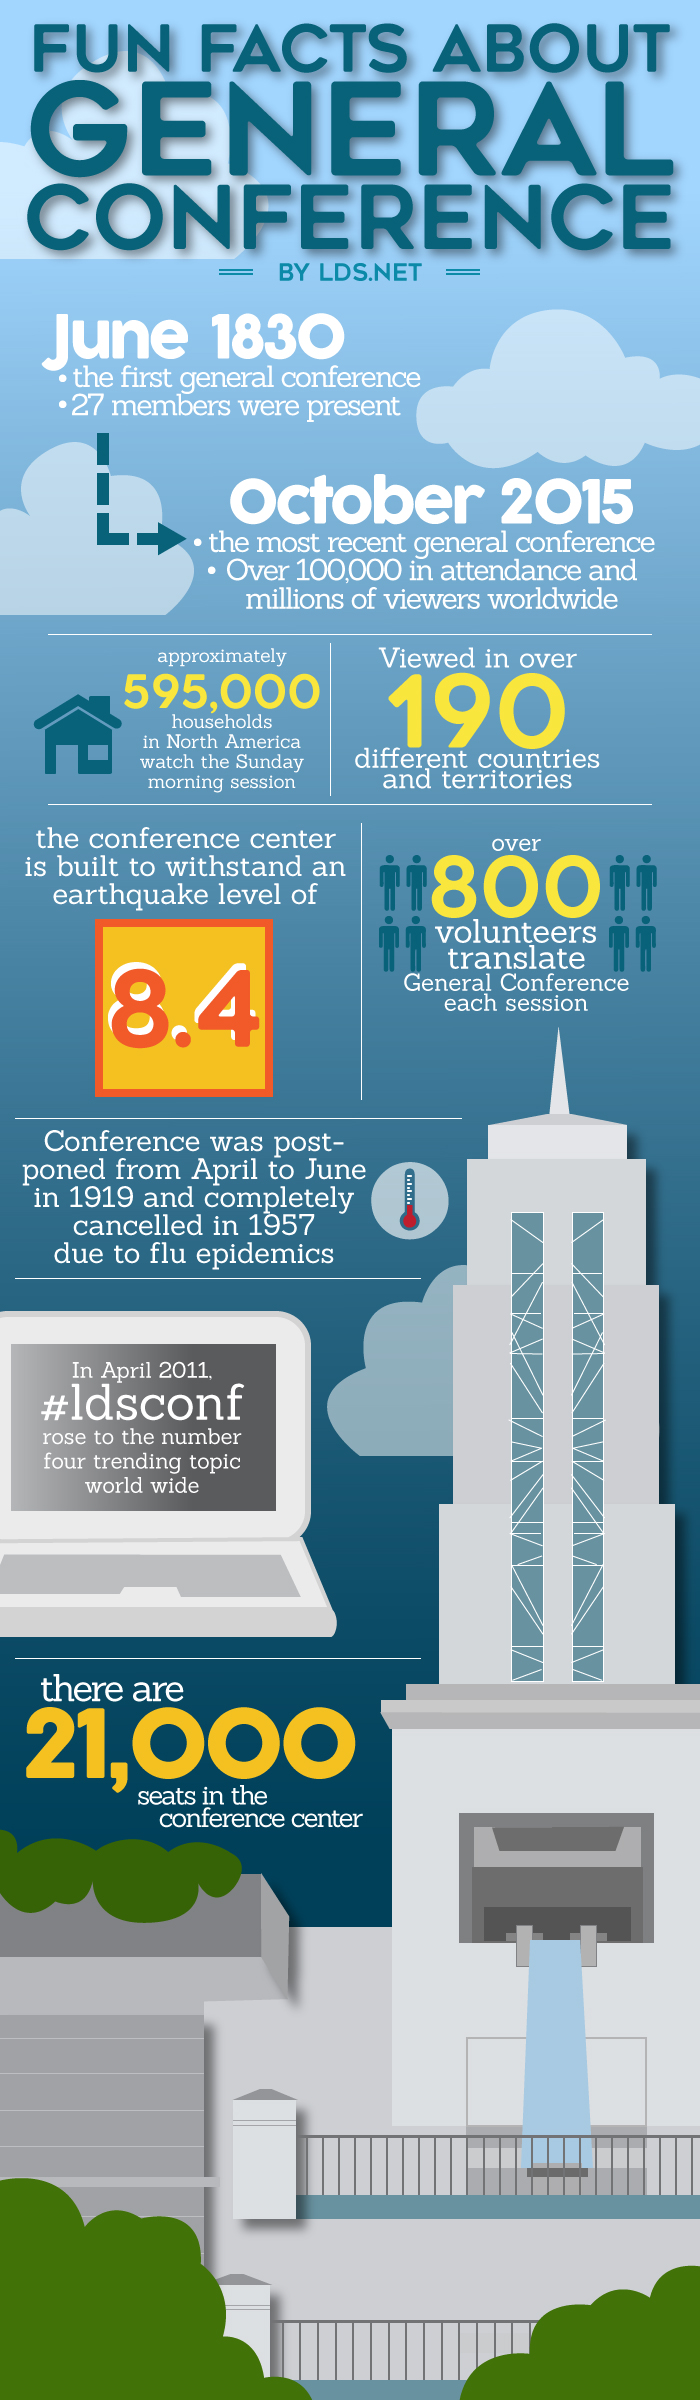 General Conference infographic